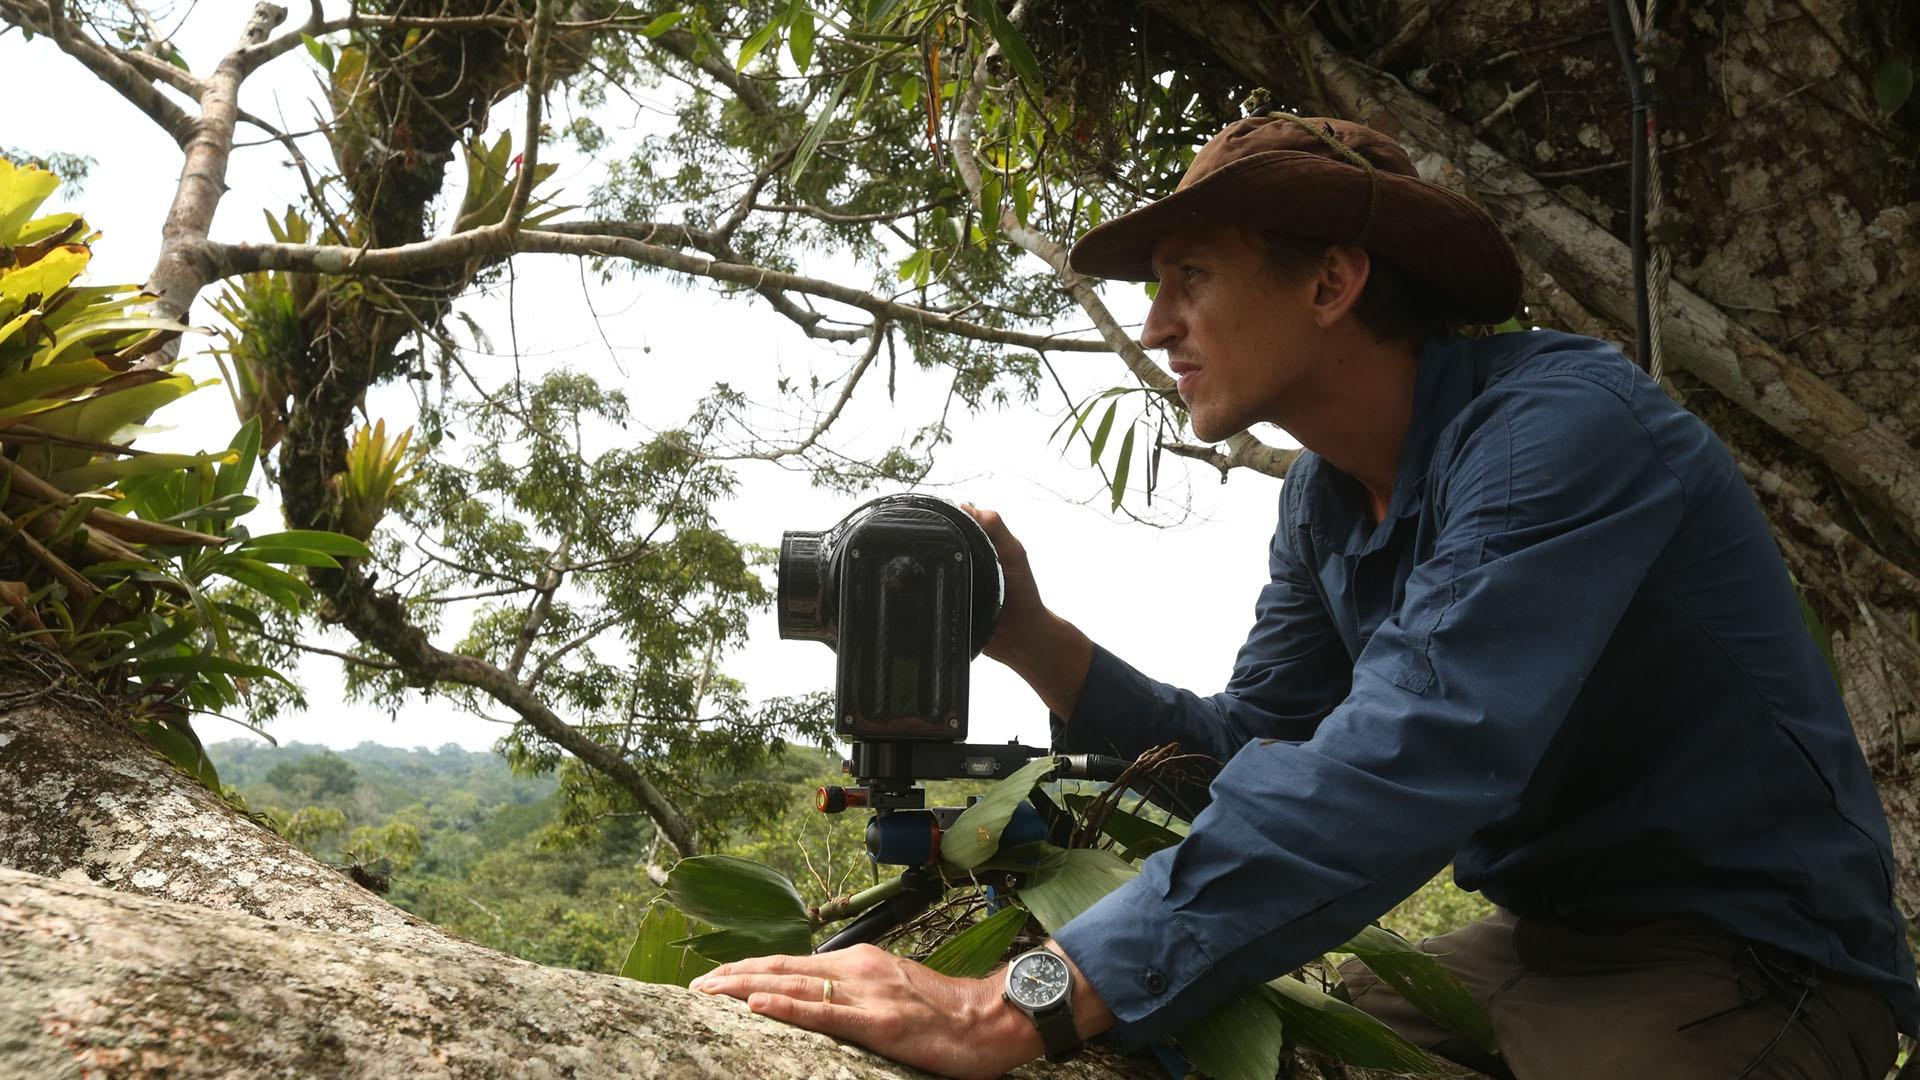 Inside NATURE: Undercover in the Jungle